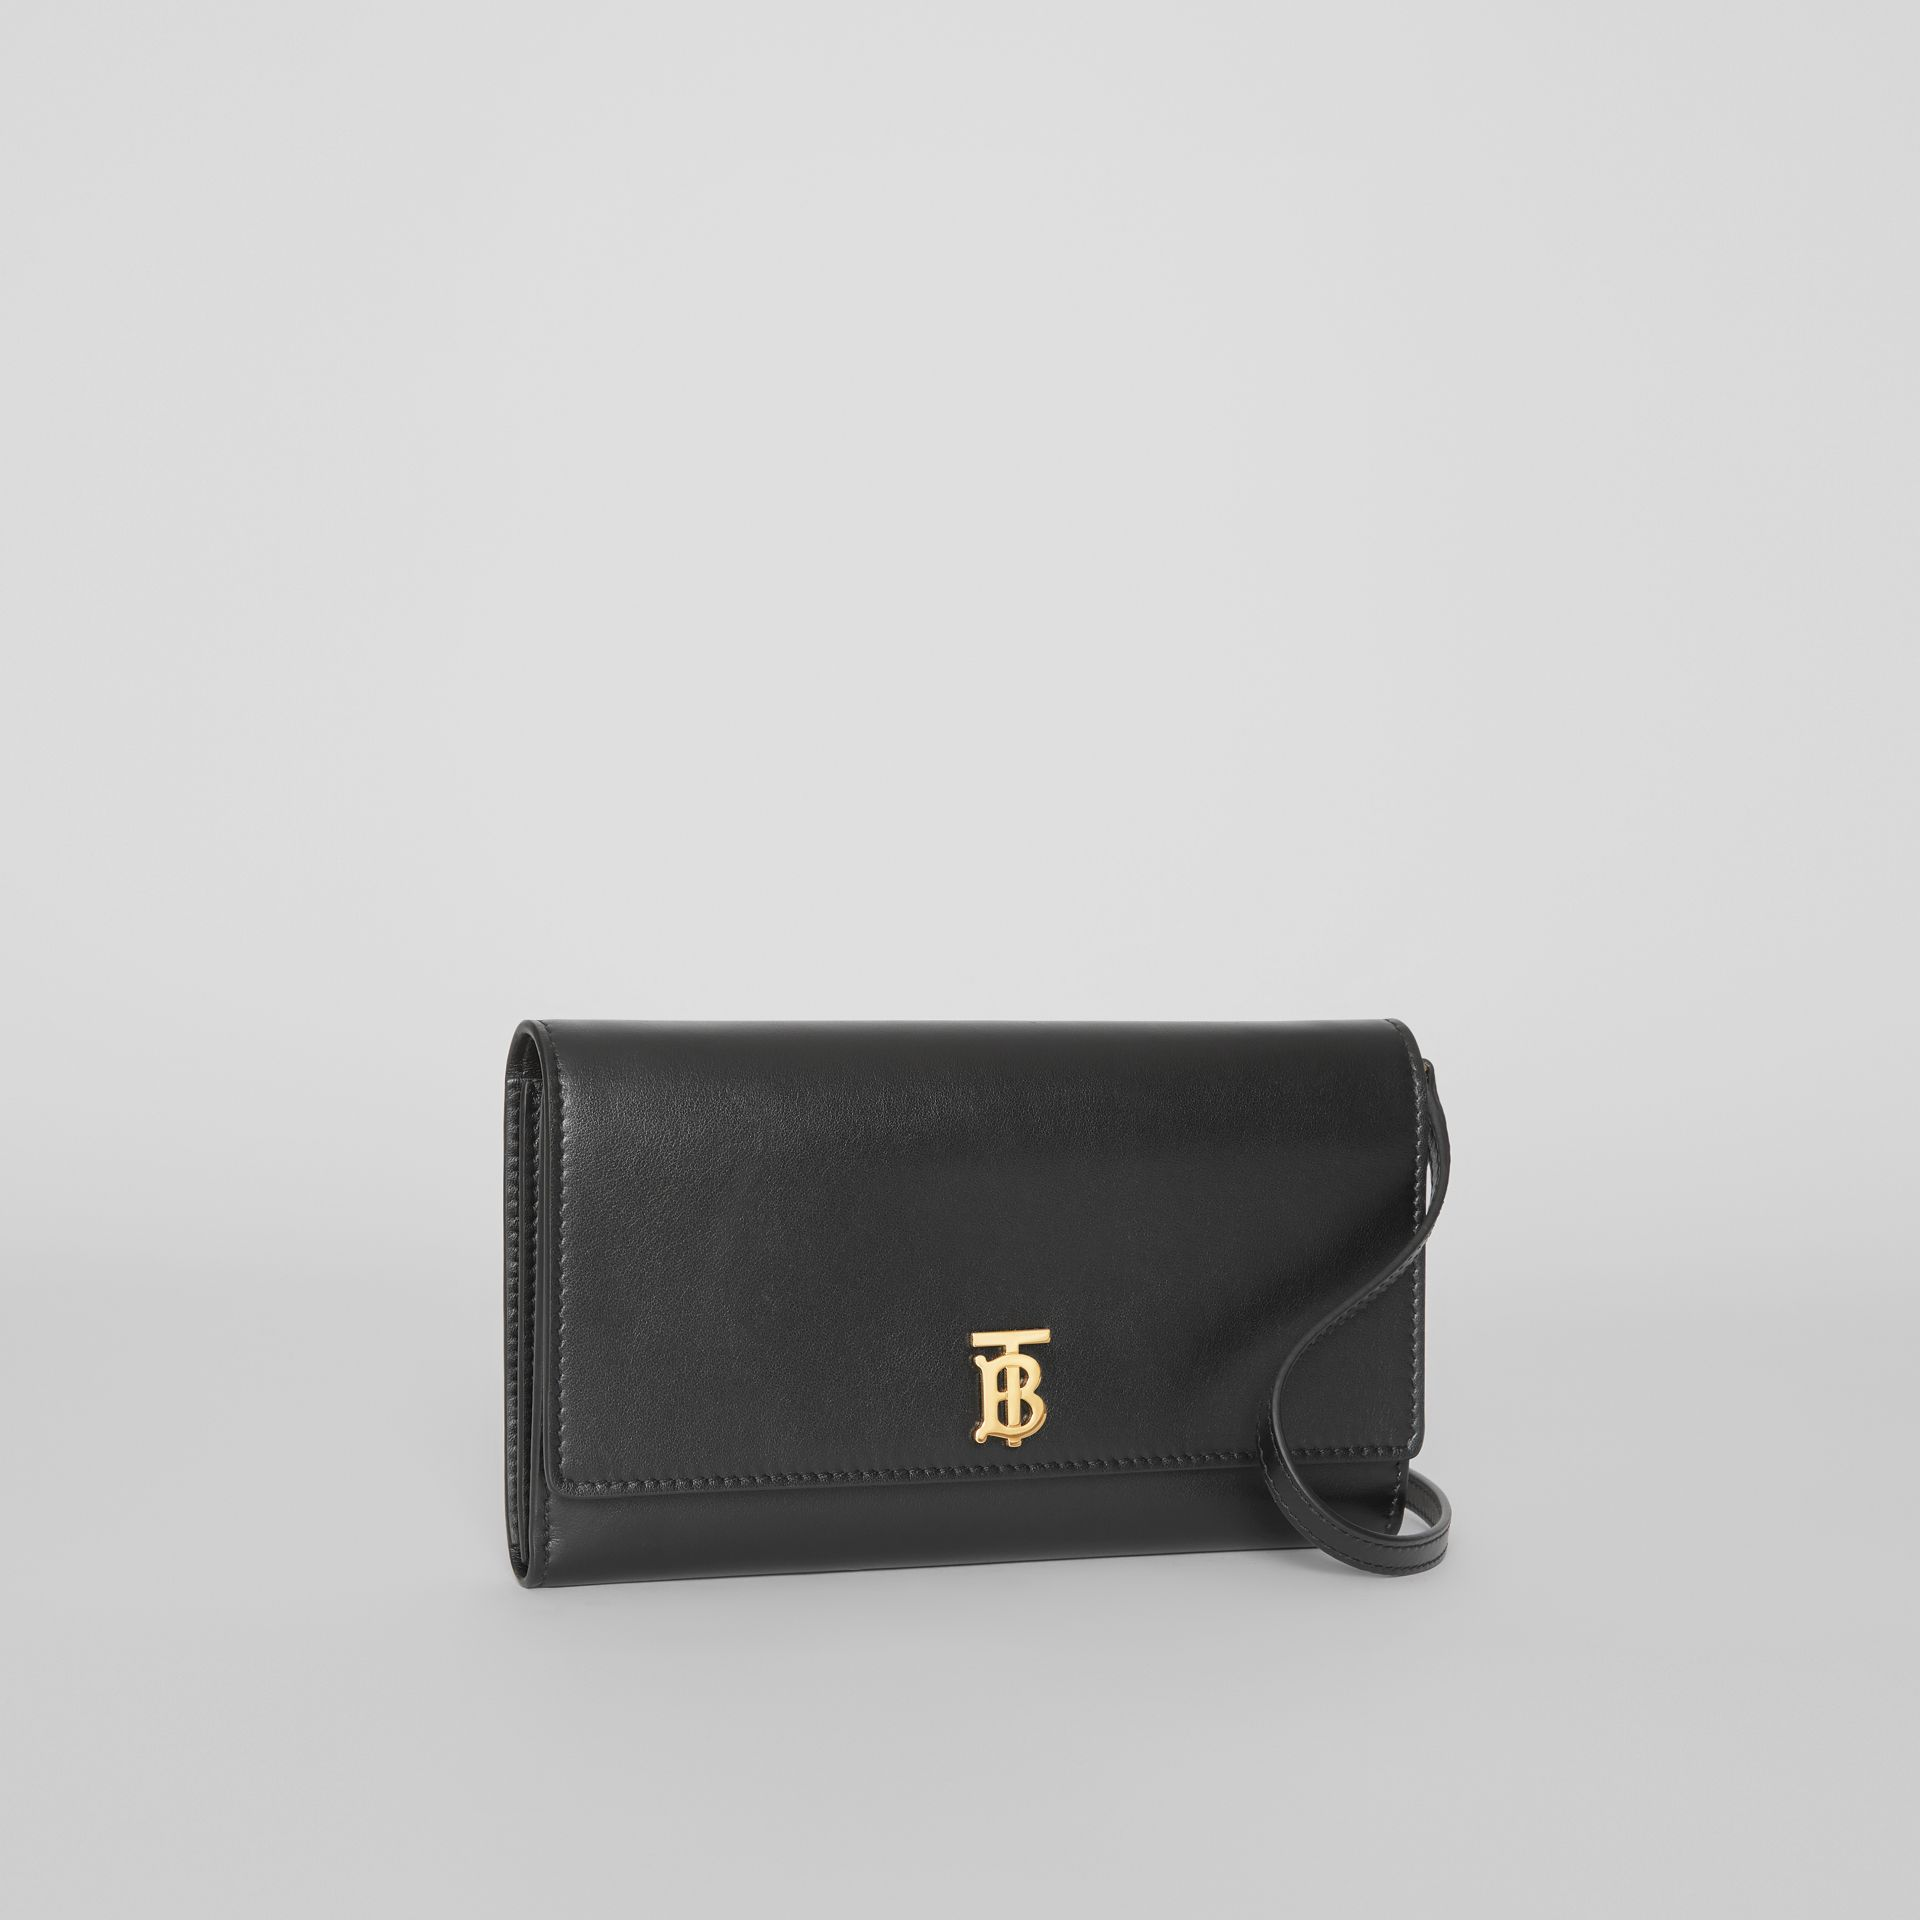 Monogram Motif Leather Wallet with Detachable Strap in Black - Women | Burberry - gallery image 7